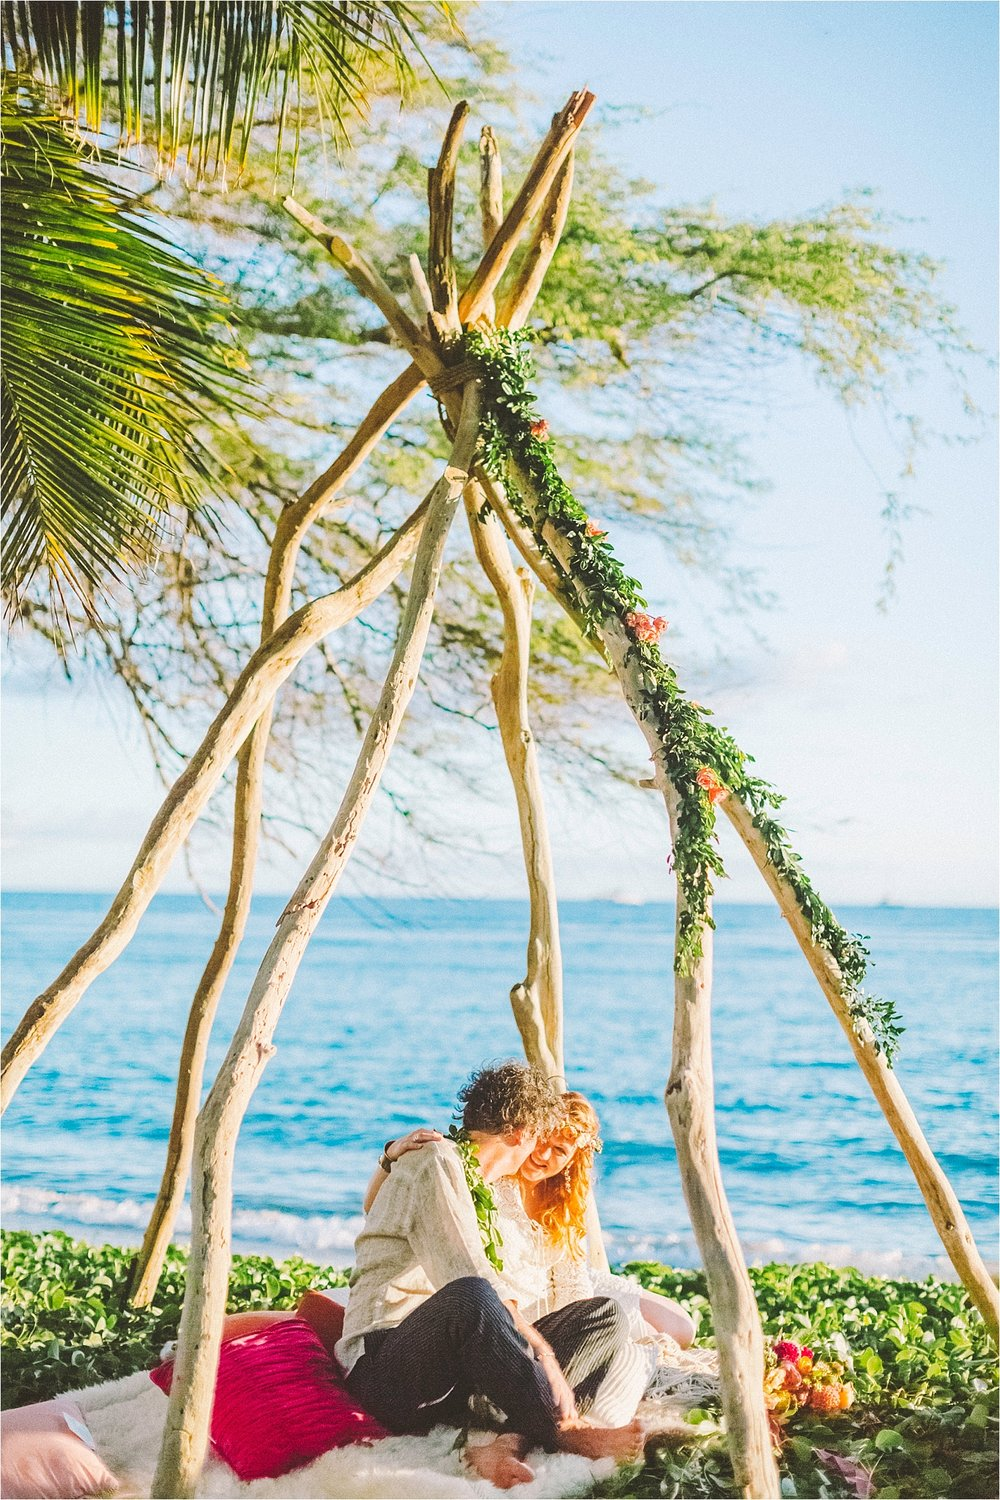 angie-diaz-photography-maui-beach-elopement_0038.jpg